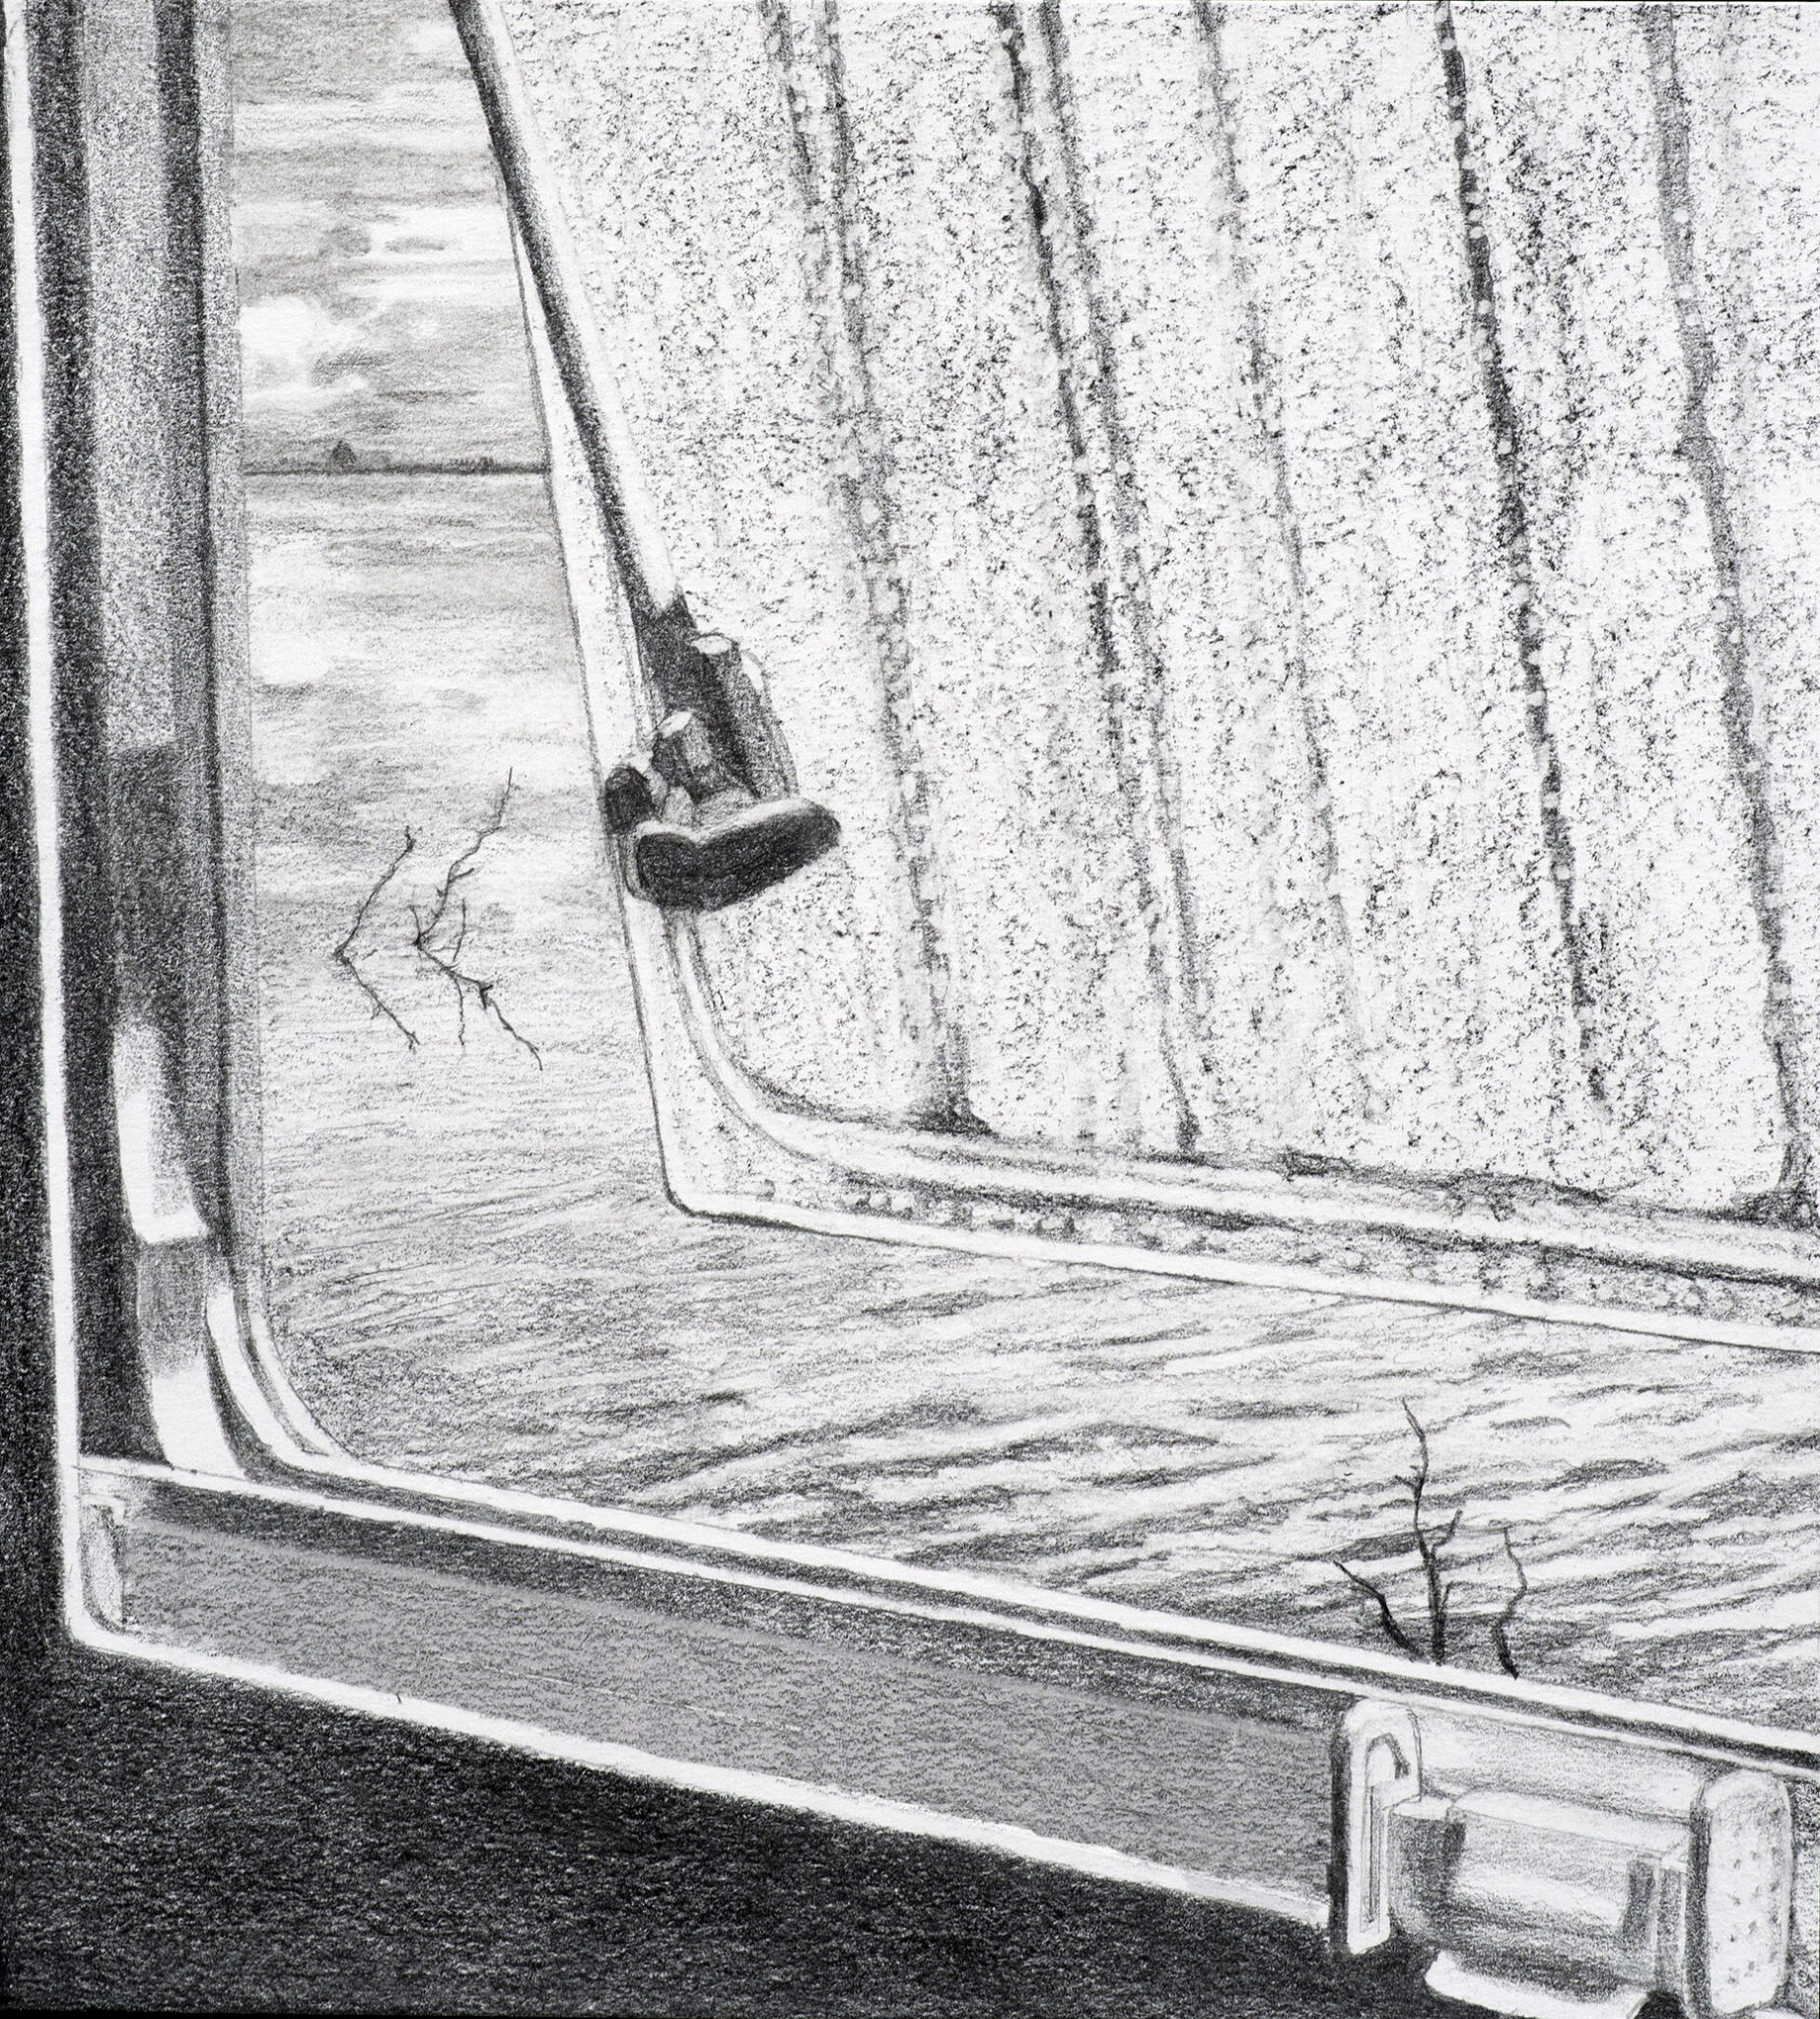 View on a window 3, Pencil on paper, 19X20 cm